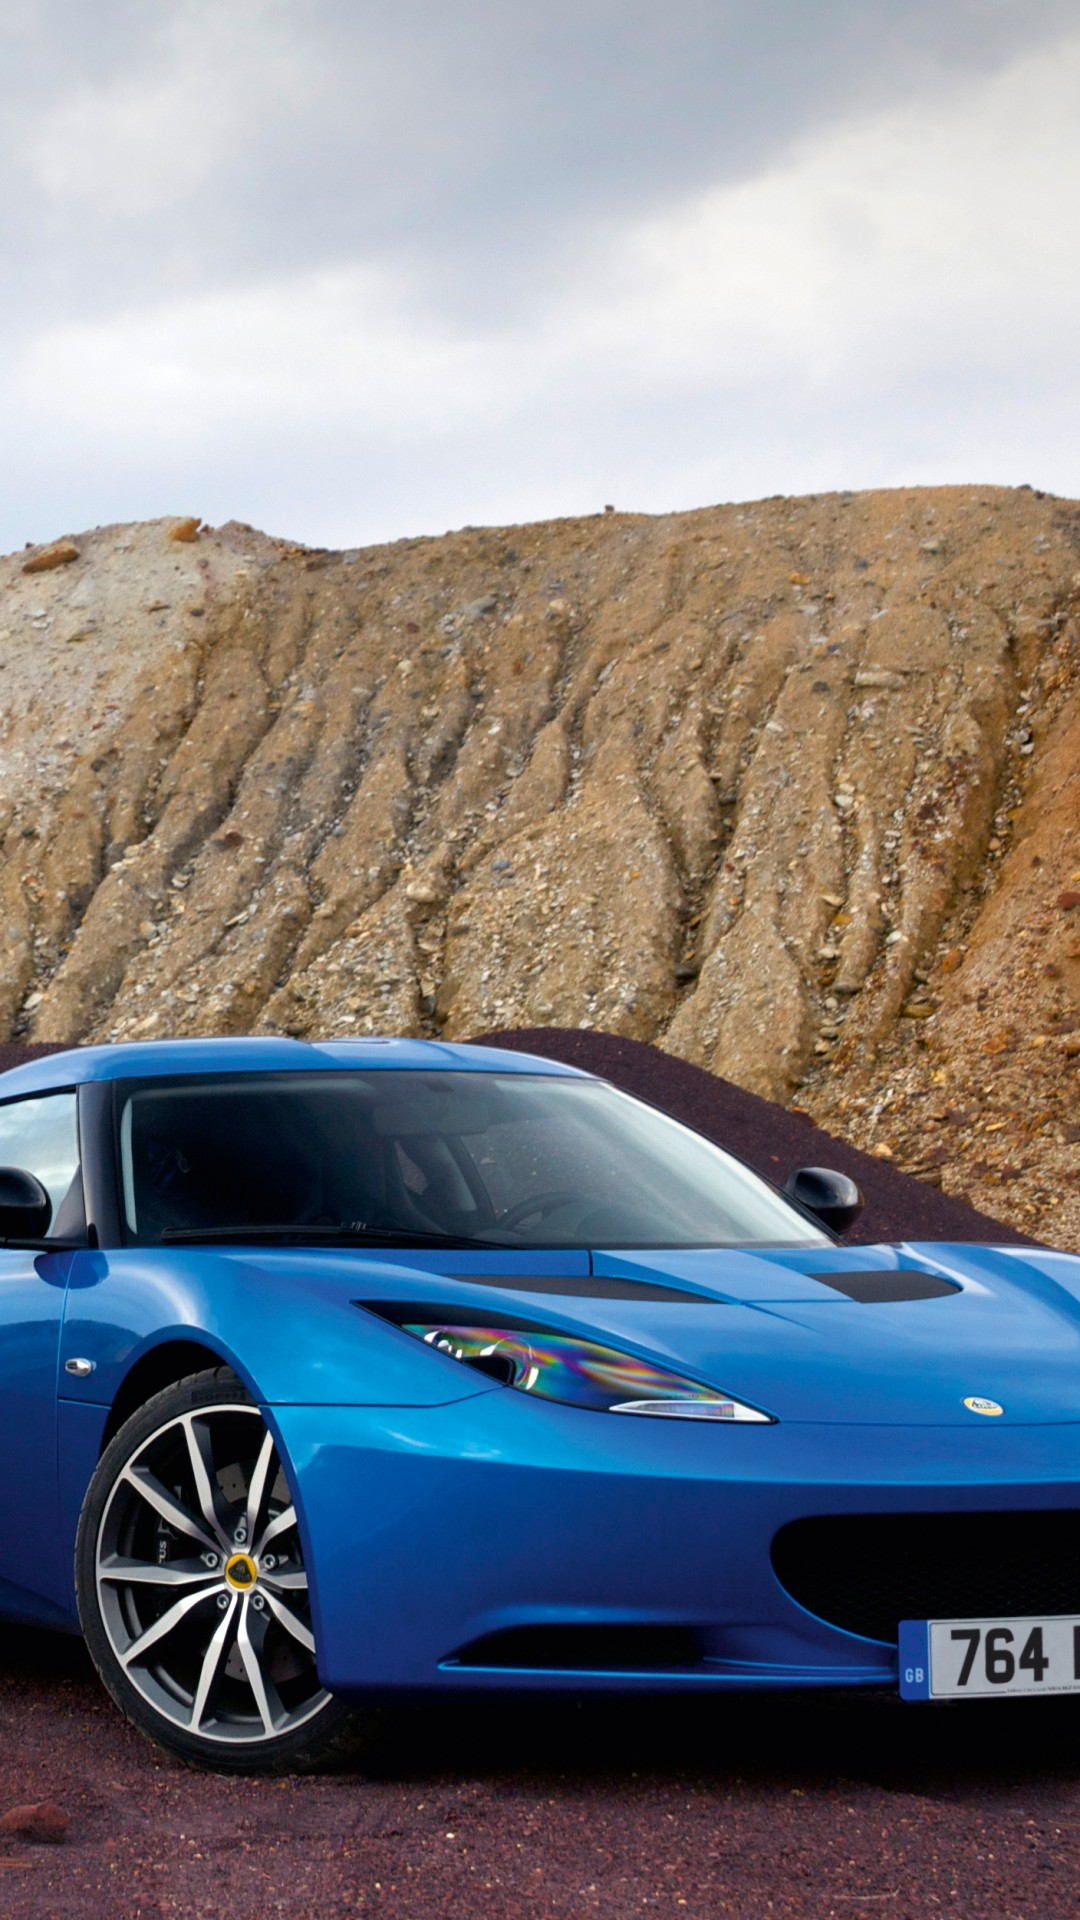 Racing In Car >> Wallpaper Lotus Evora S, supercar, Lotus, sports car, mountain, luxury cars, blue, review, test ...